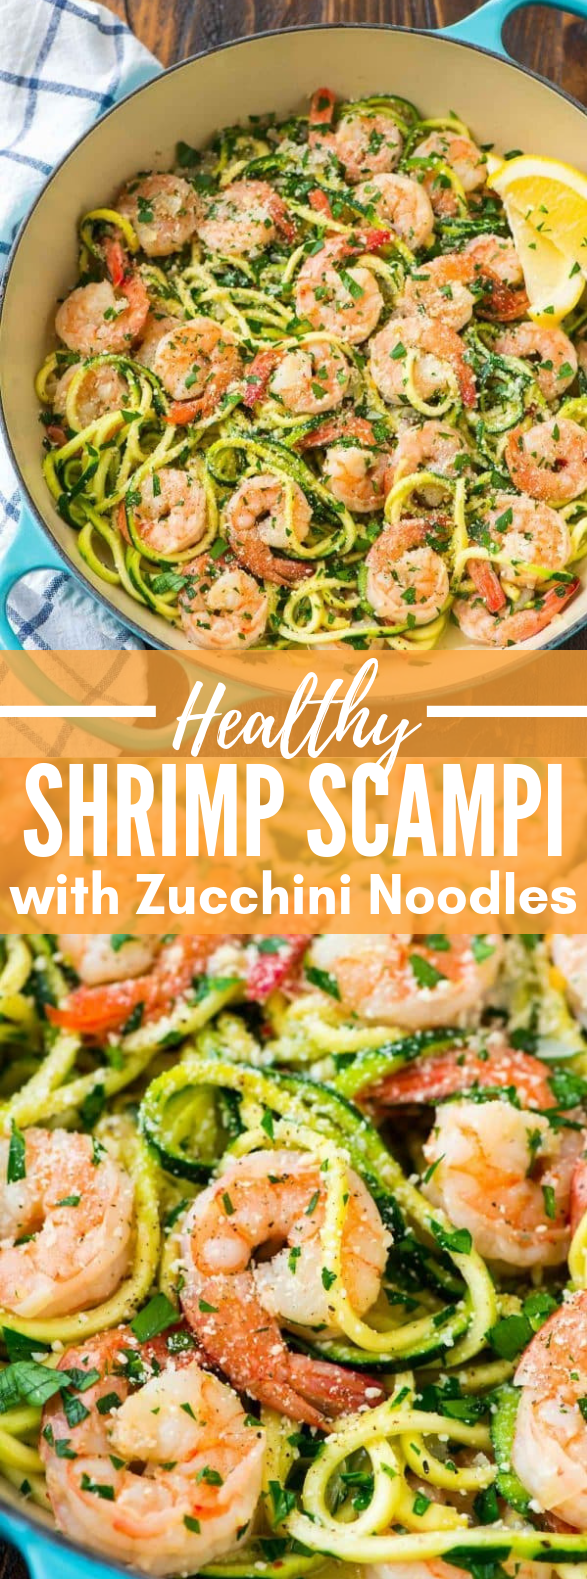 Healthy Shrimp Scampi with Zucchini Noodles #healthydiet #lowcarb #shrimpscampi